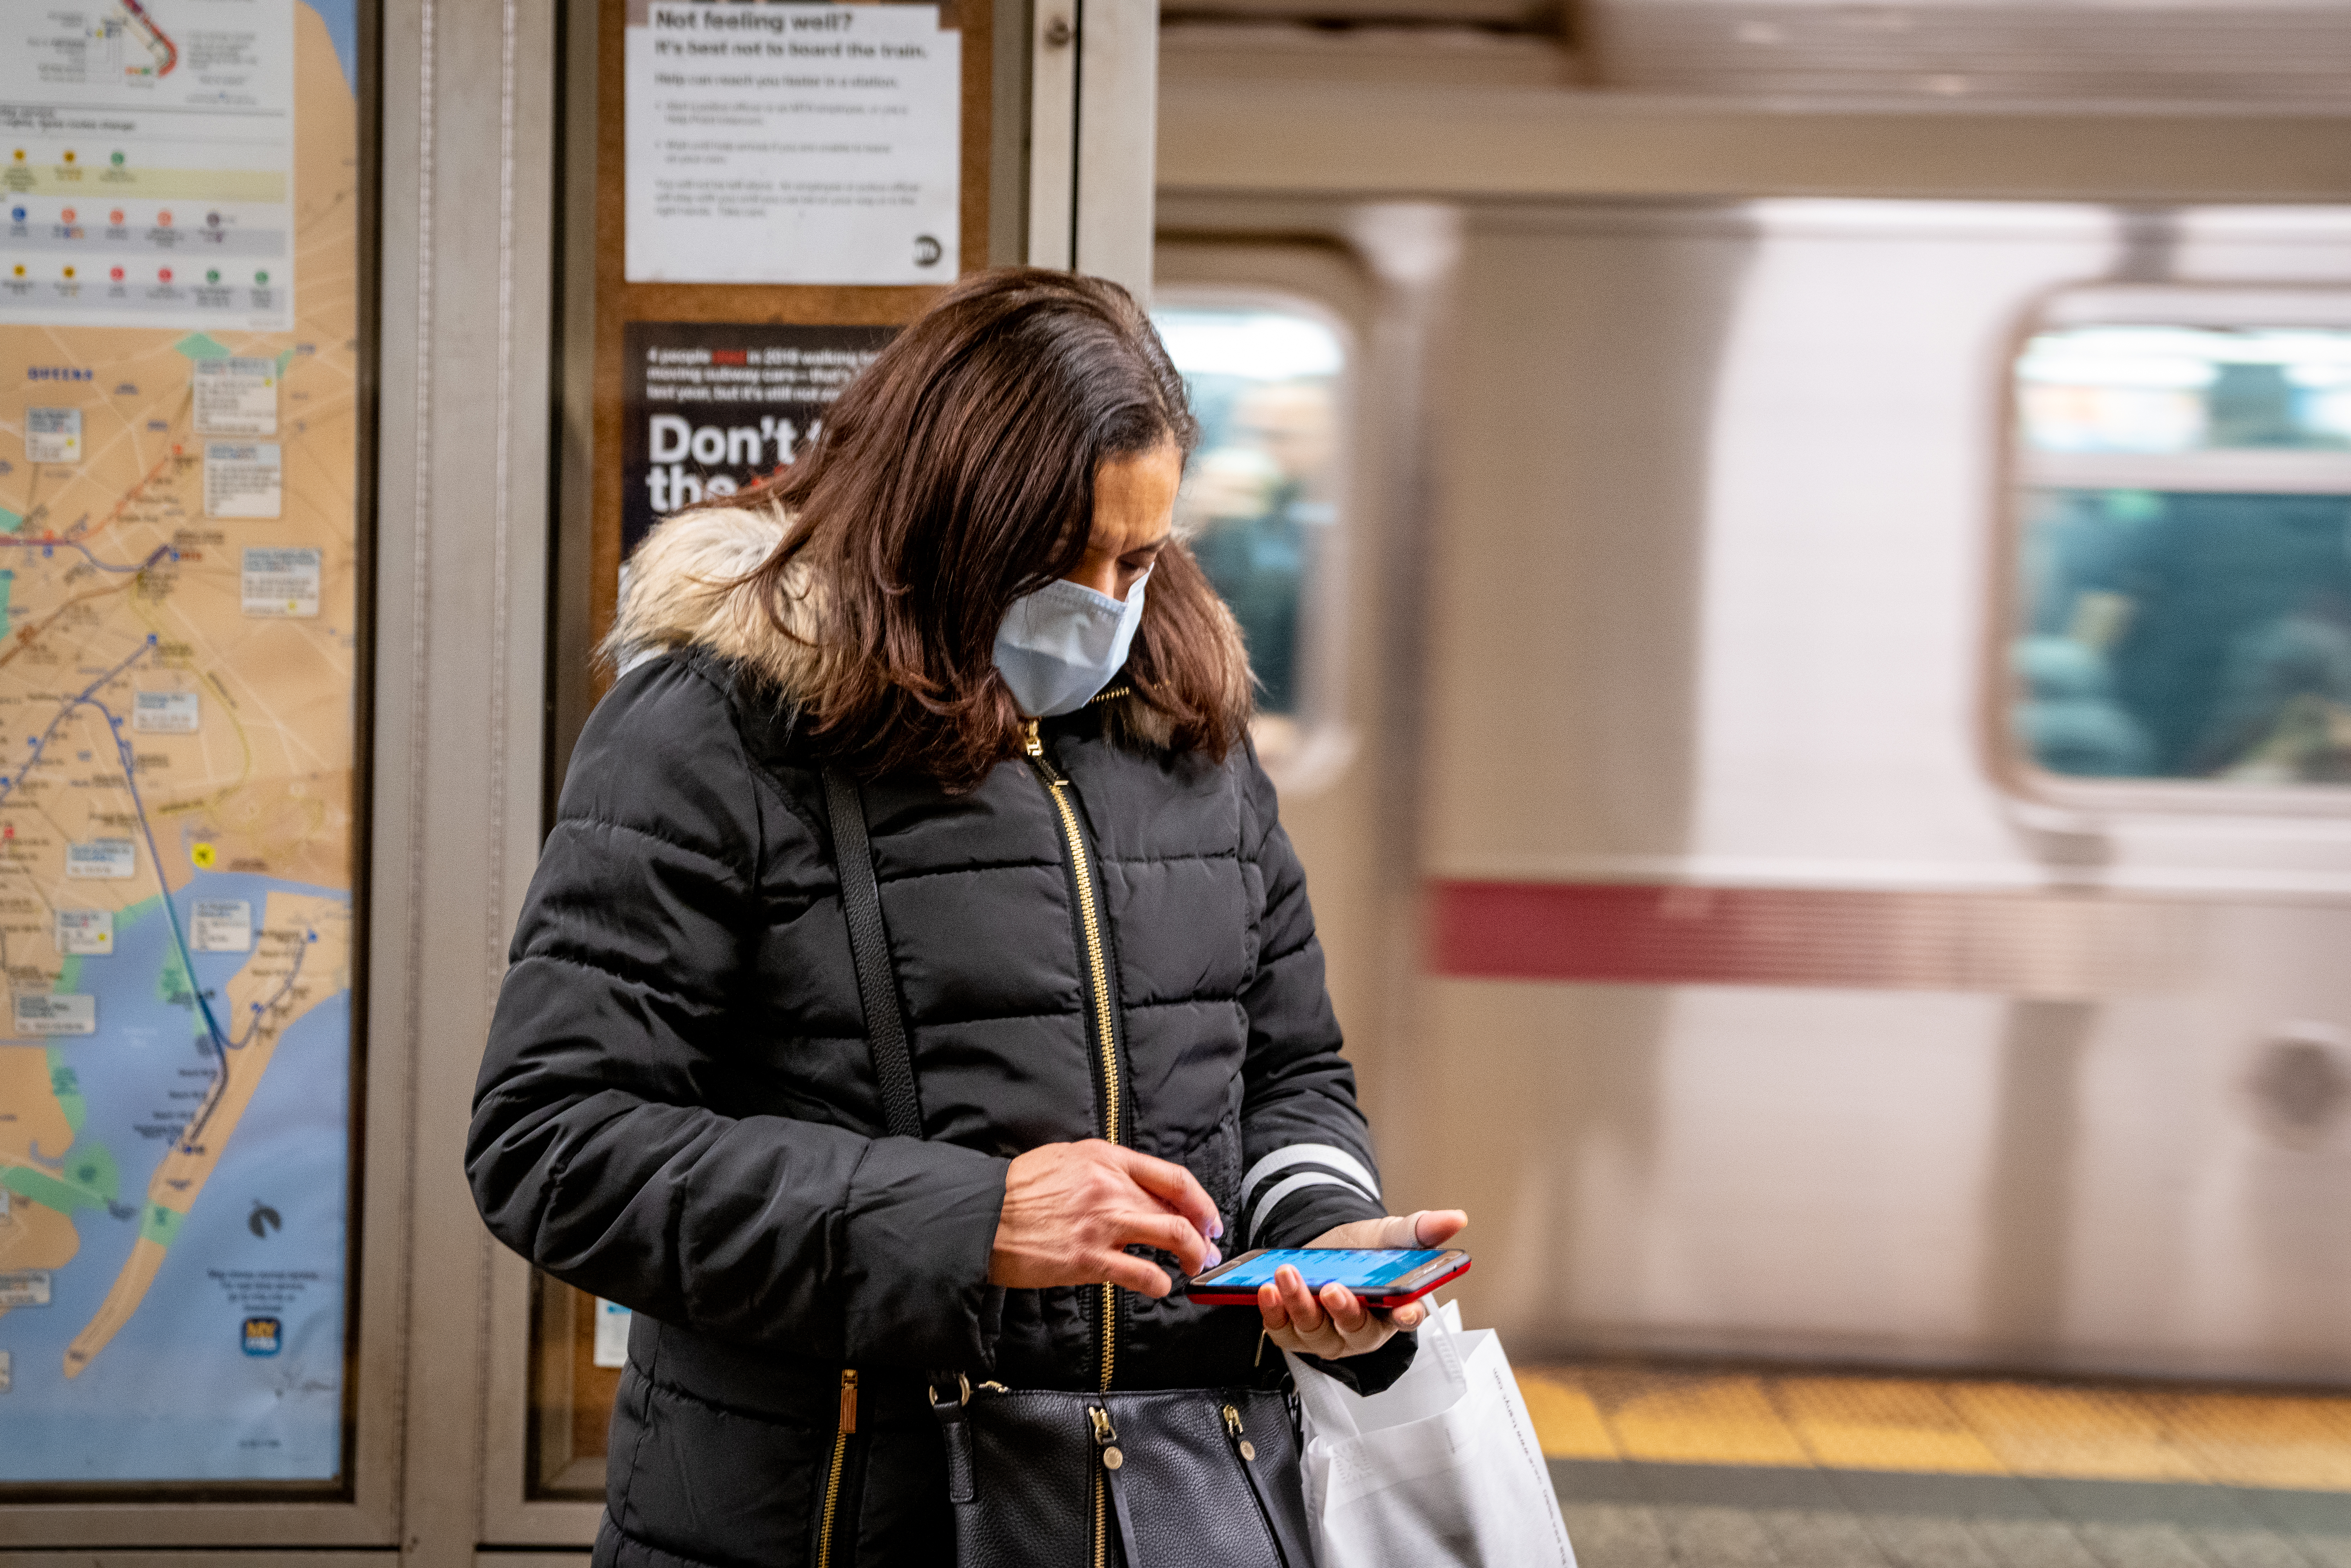 A woman wearing a face mask in a New York City train station on March 5, 2020.